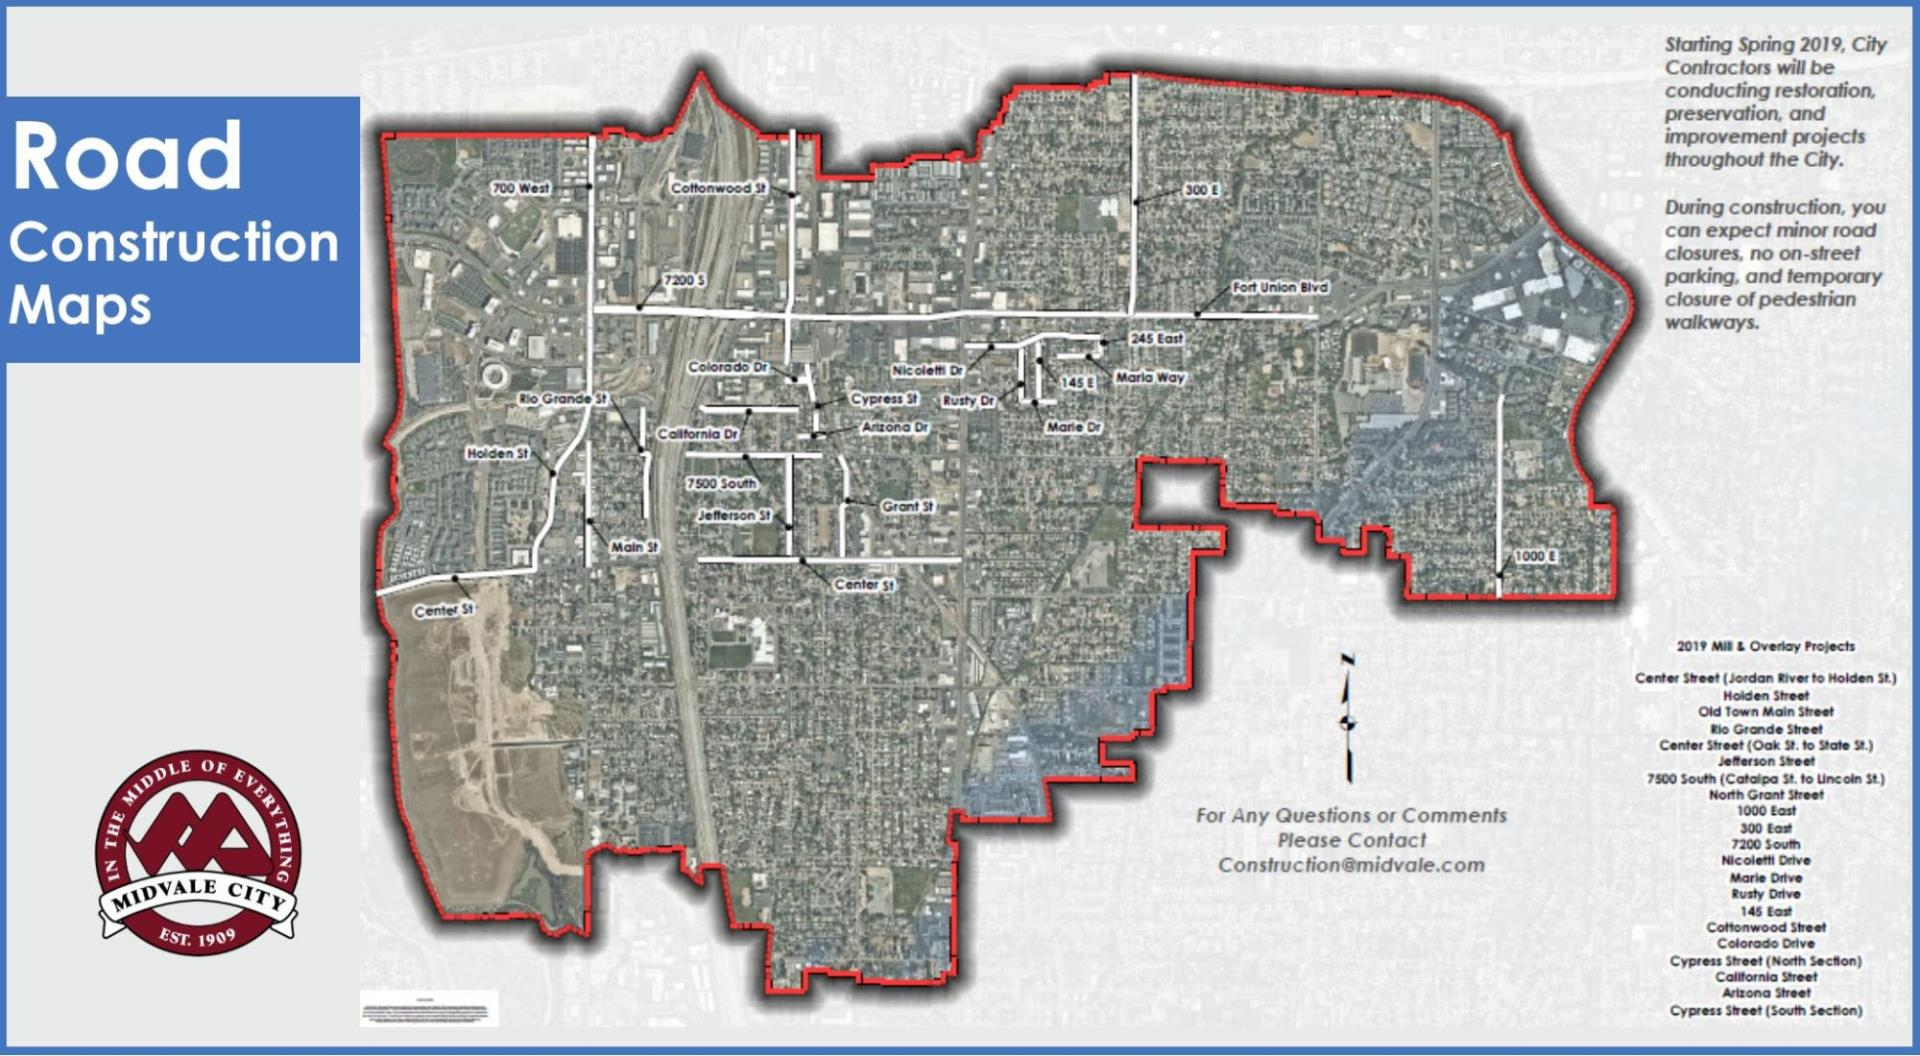 Midvale City Map listing road construction plans